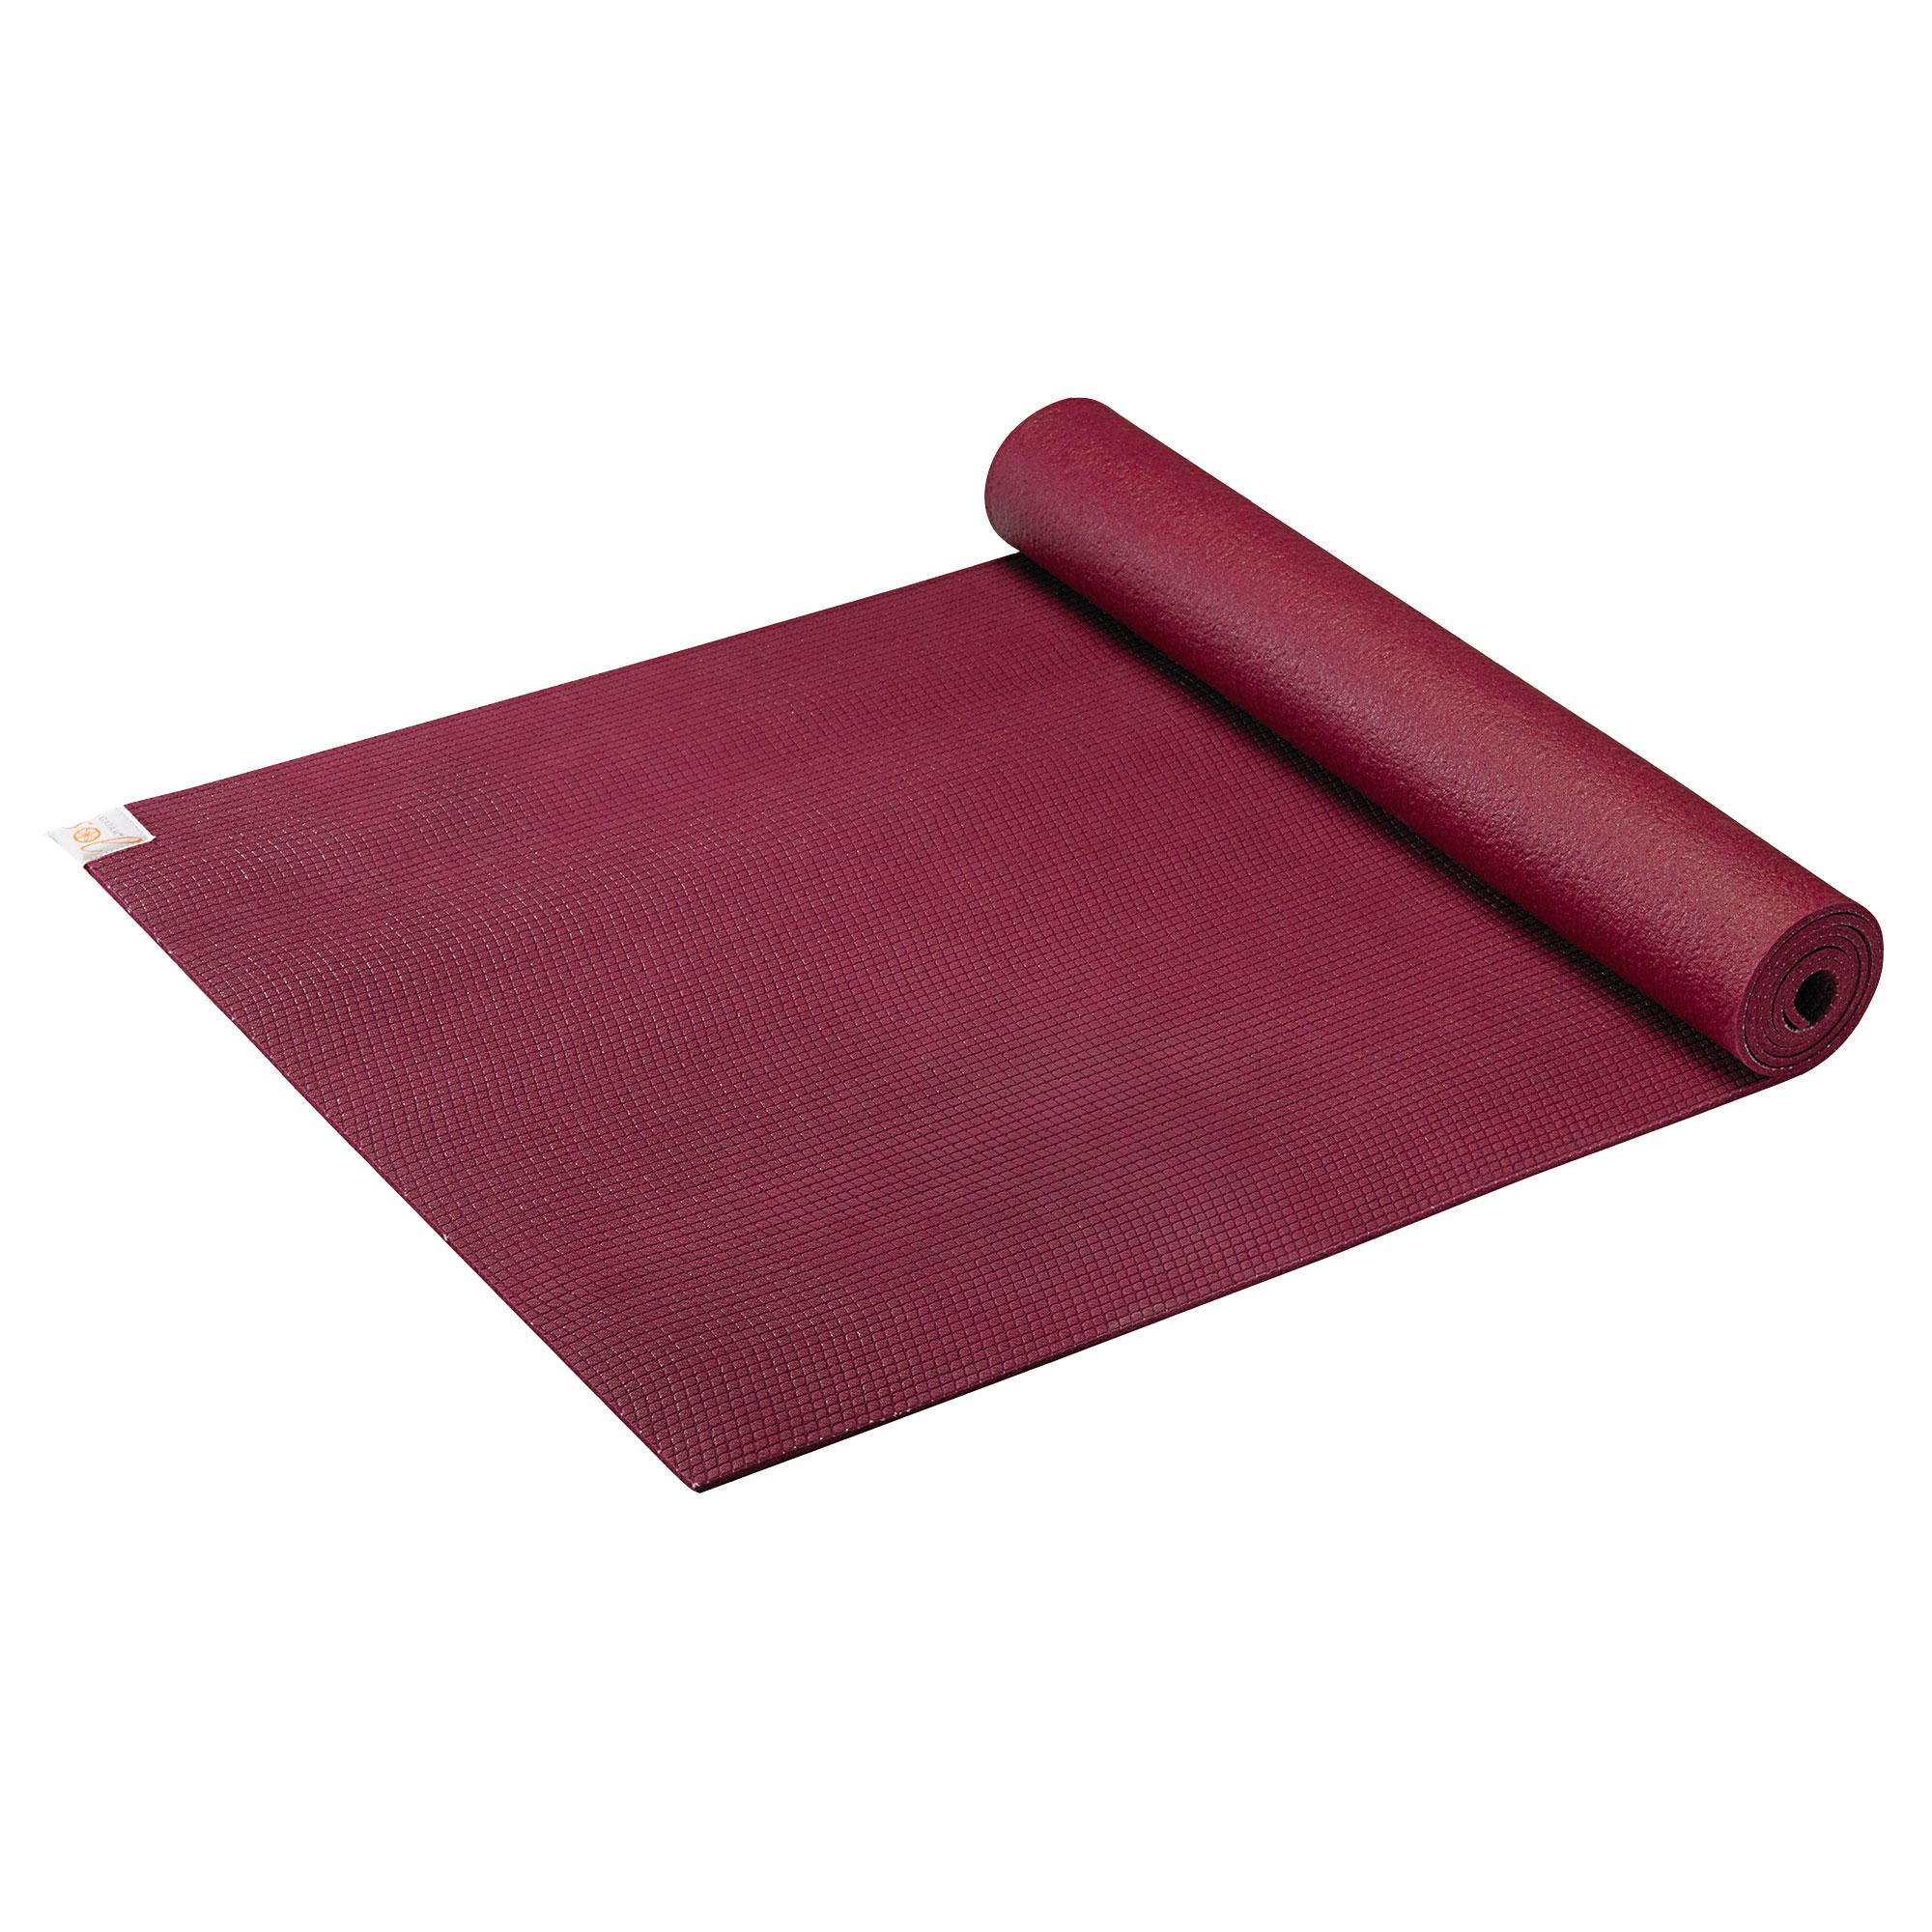 mats the high yogamat original yoga kurma mat usa made professional german brands since quality